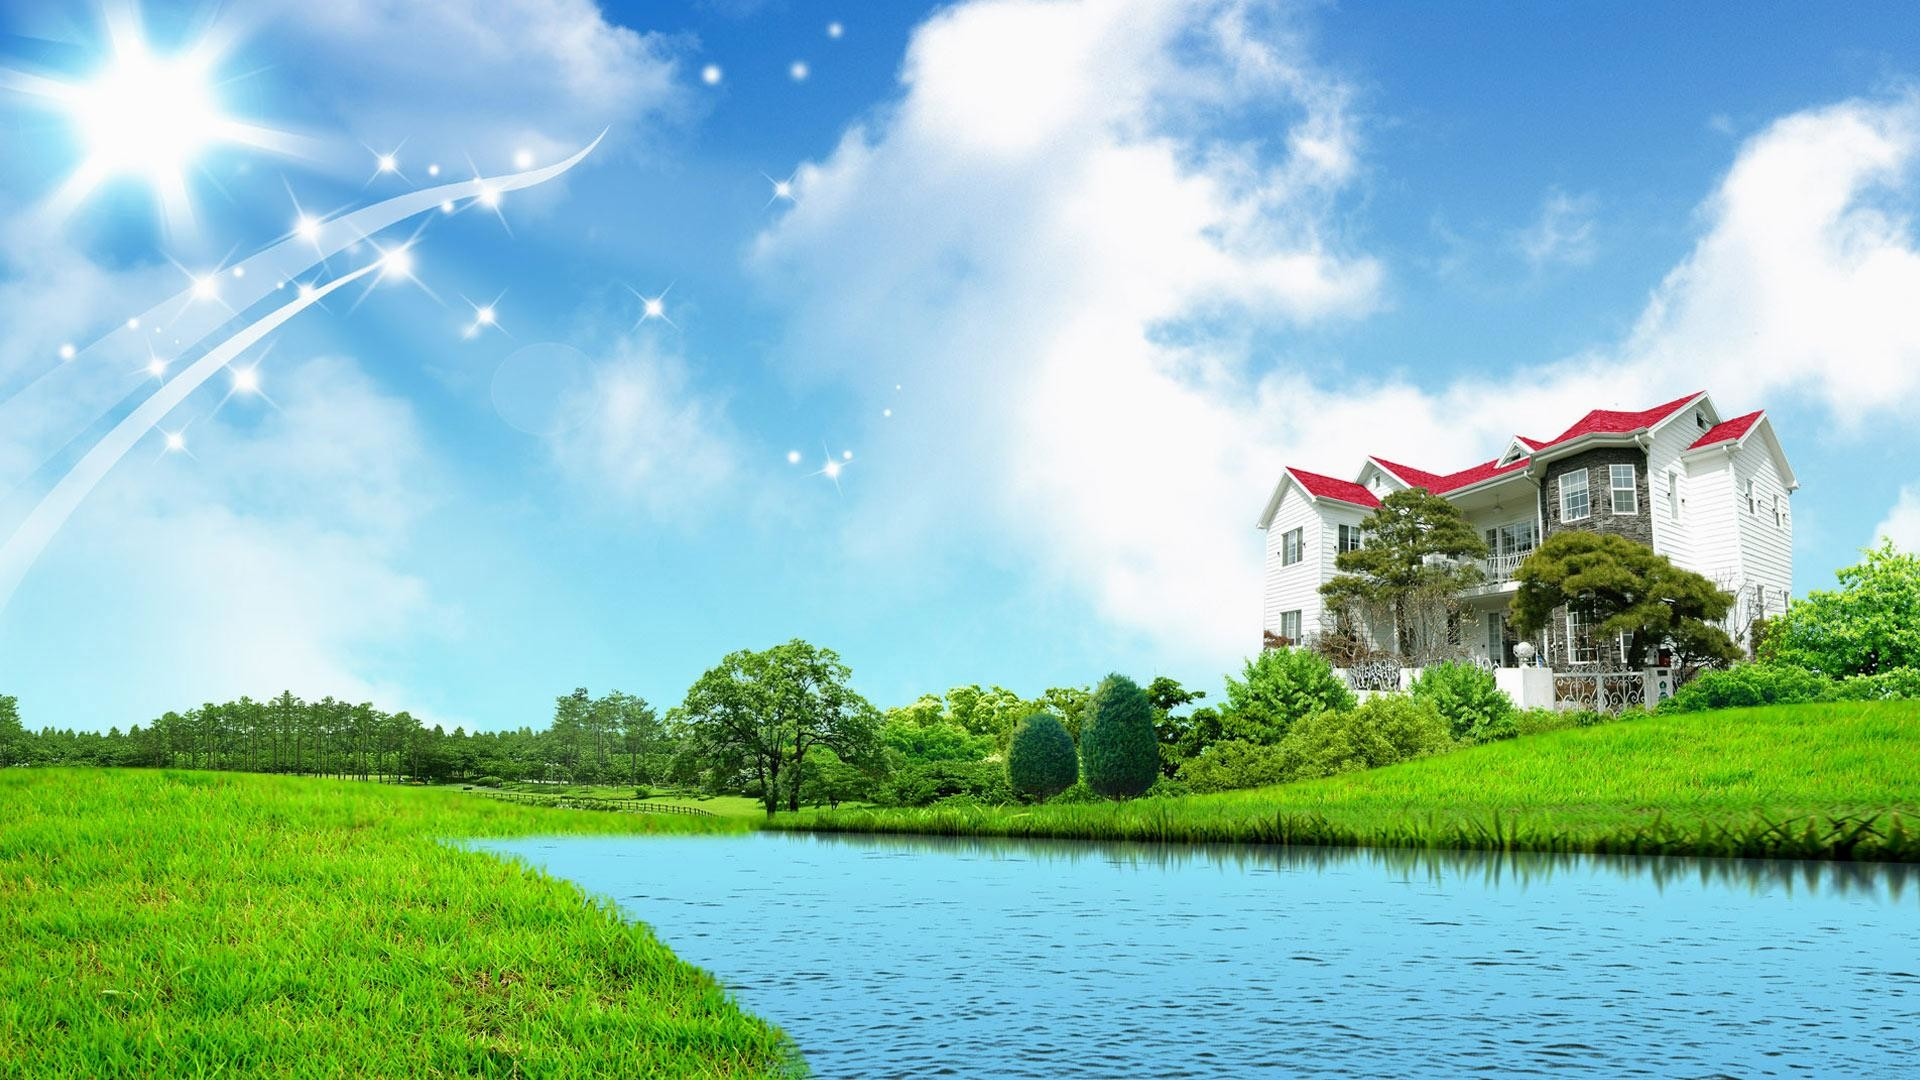 wallpaper.wiki-Sweet-home-fantasy-green-nature-wallpapers-